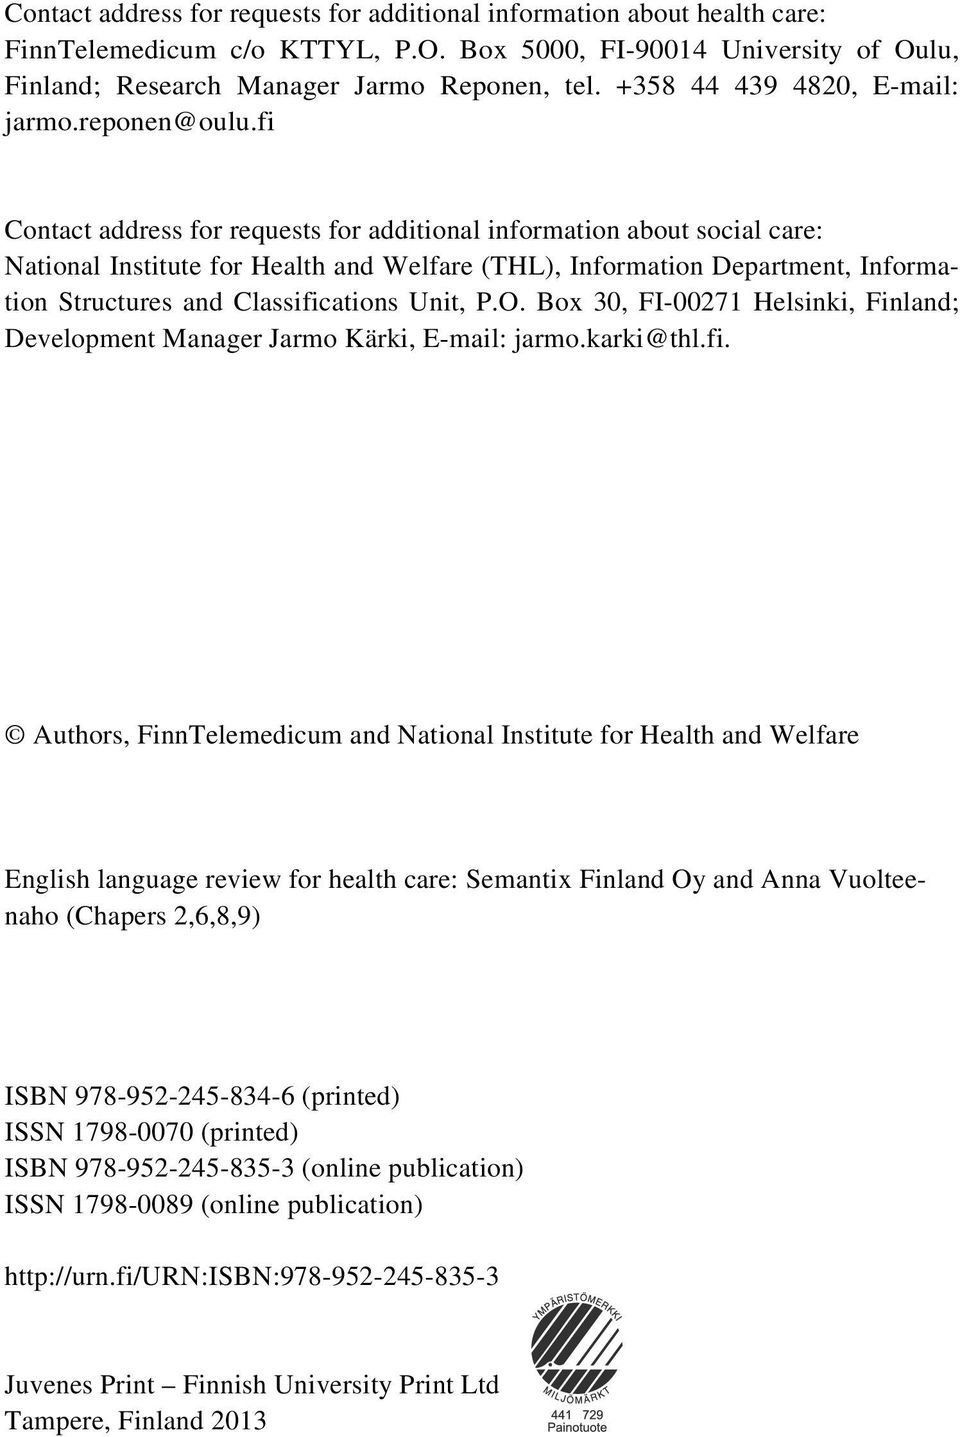 fi Contact address for requests for additional information about social care: National Institute for Health and Welfare (THL), Information Department, Information Structures and Classifications Unit,